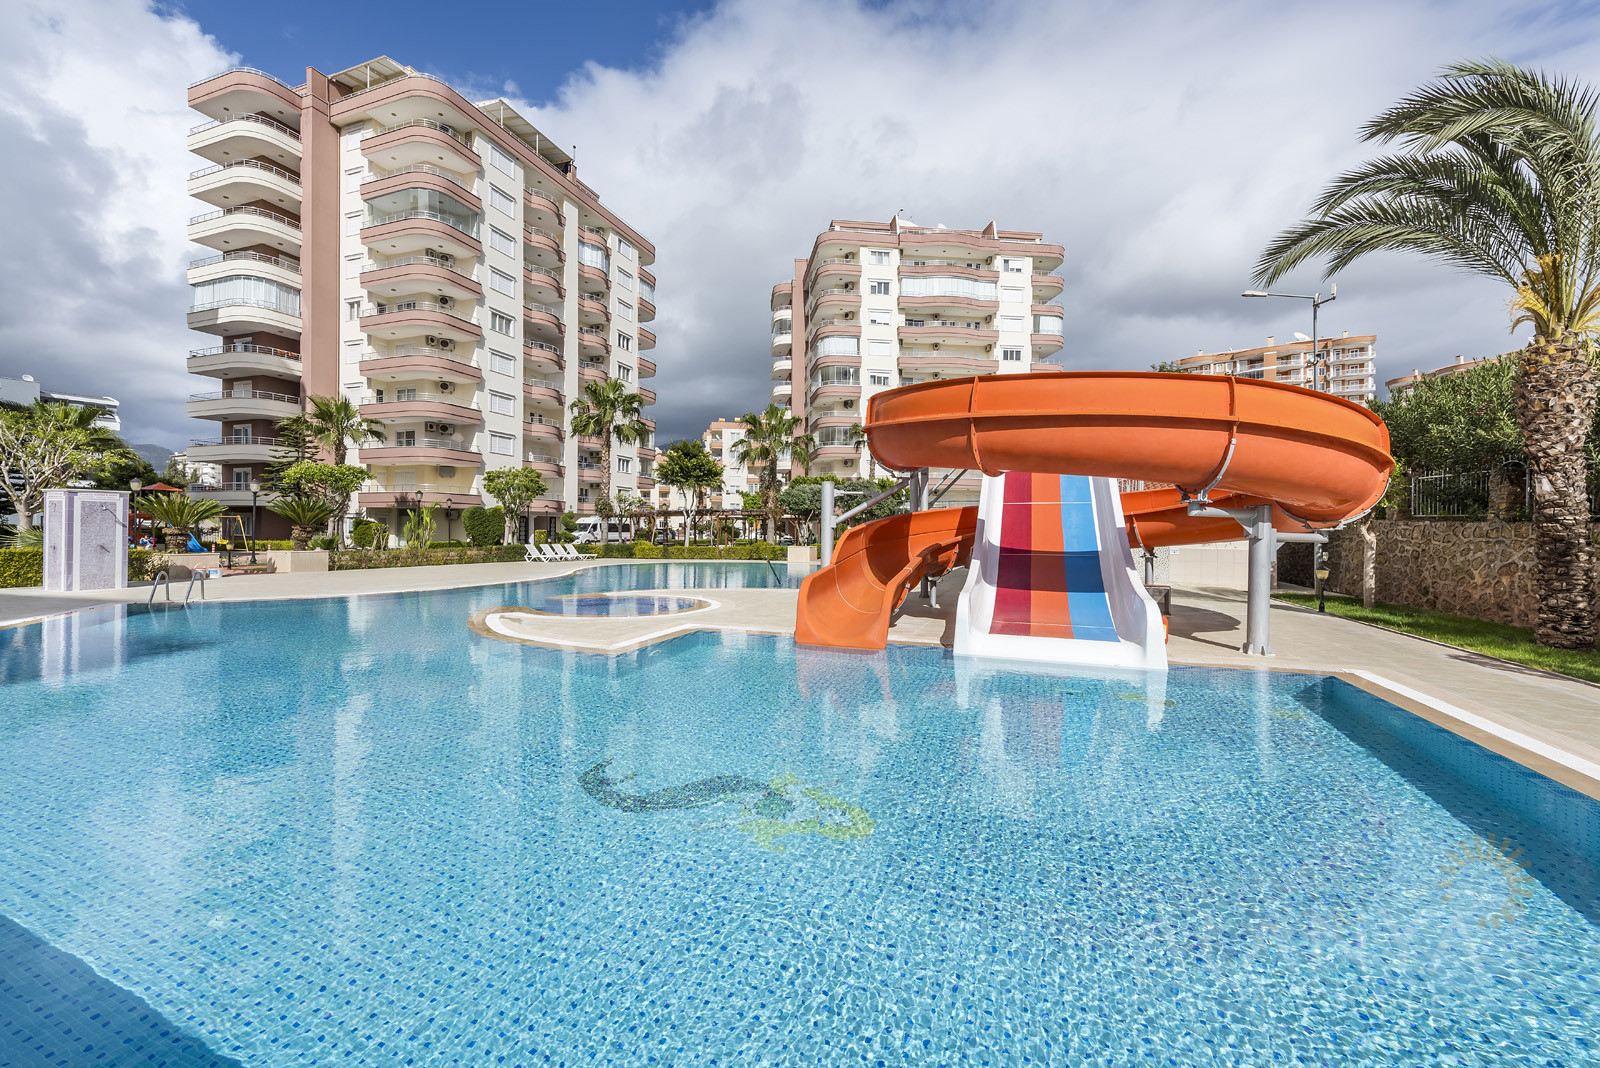 Prestige Residence - 3 bedrooms apartment for sale in Tosmur, Alanya